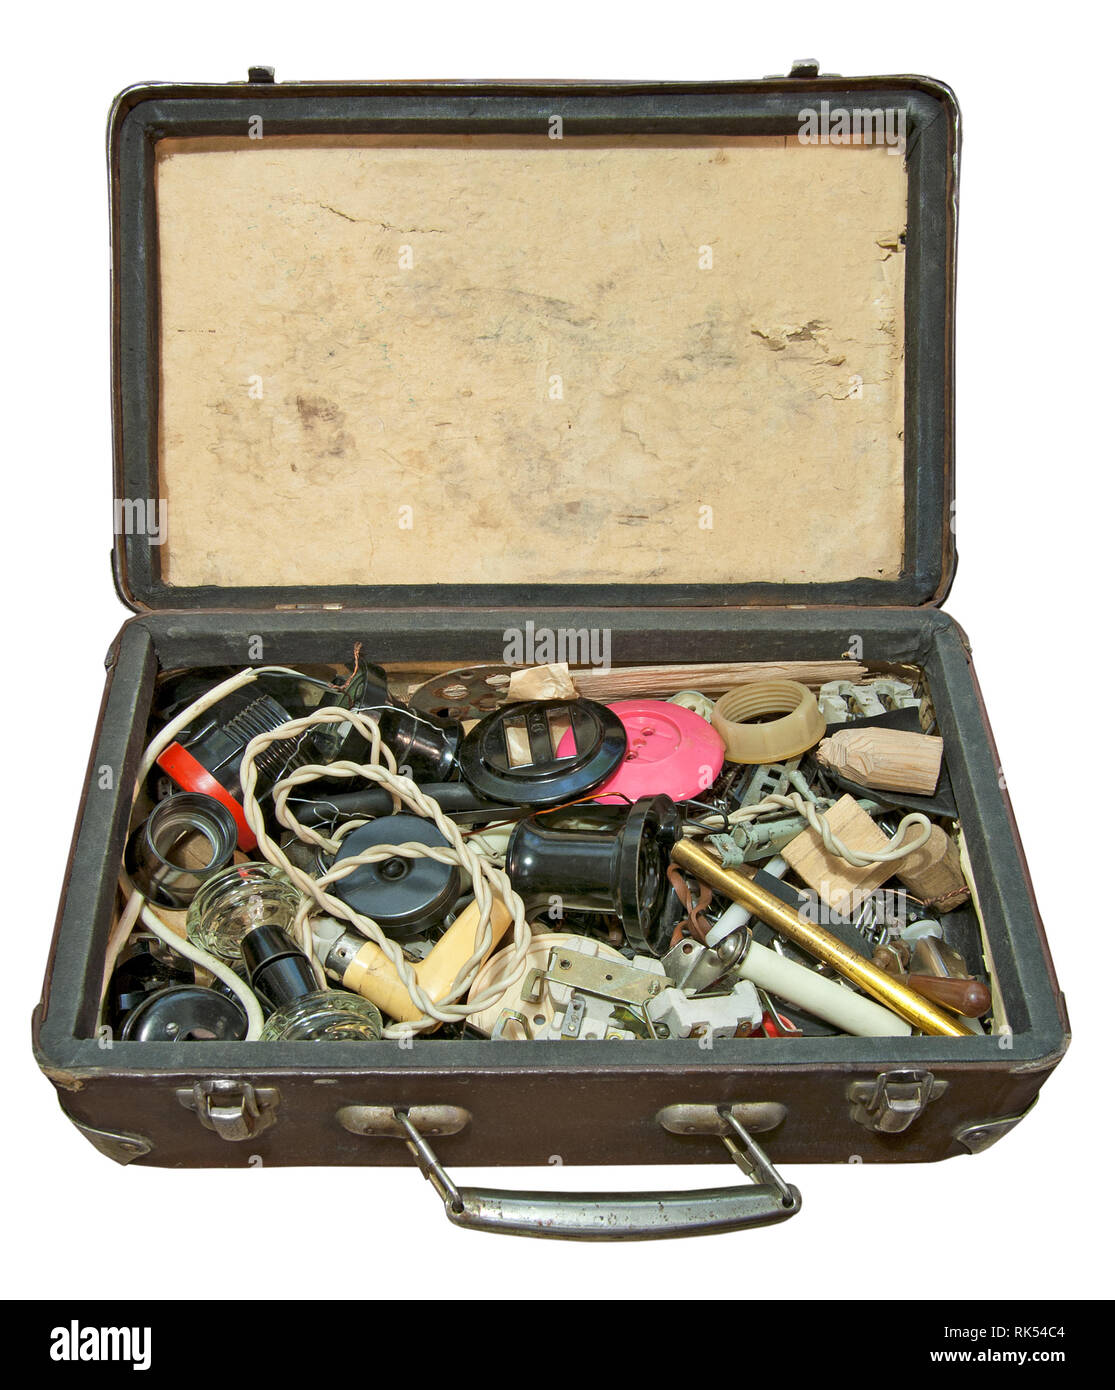 Dirty and dusty suitcase with old electrical accessories isolated on a white background. Close up image - Stock Image